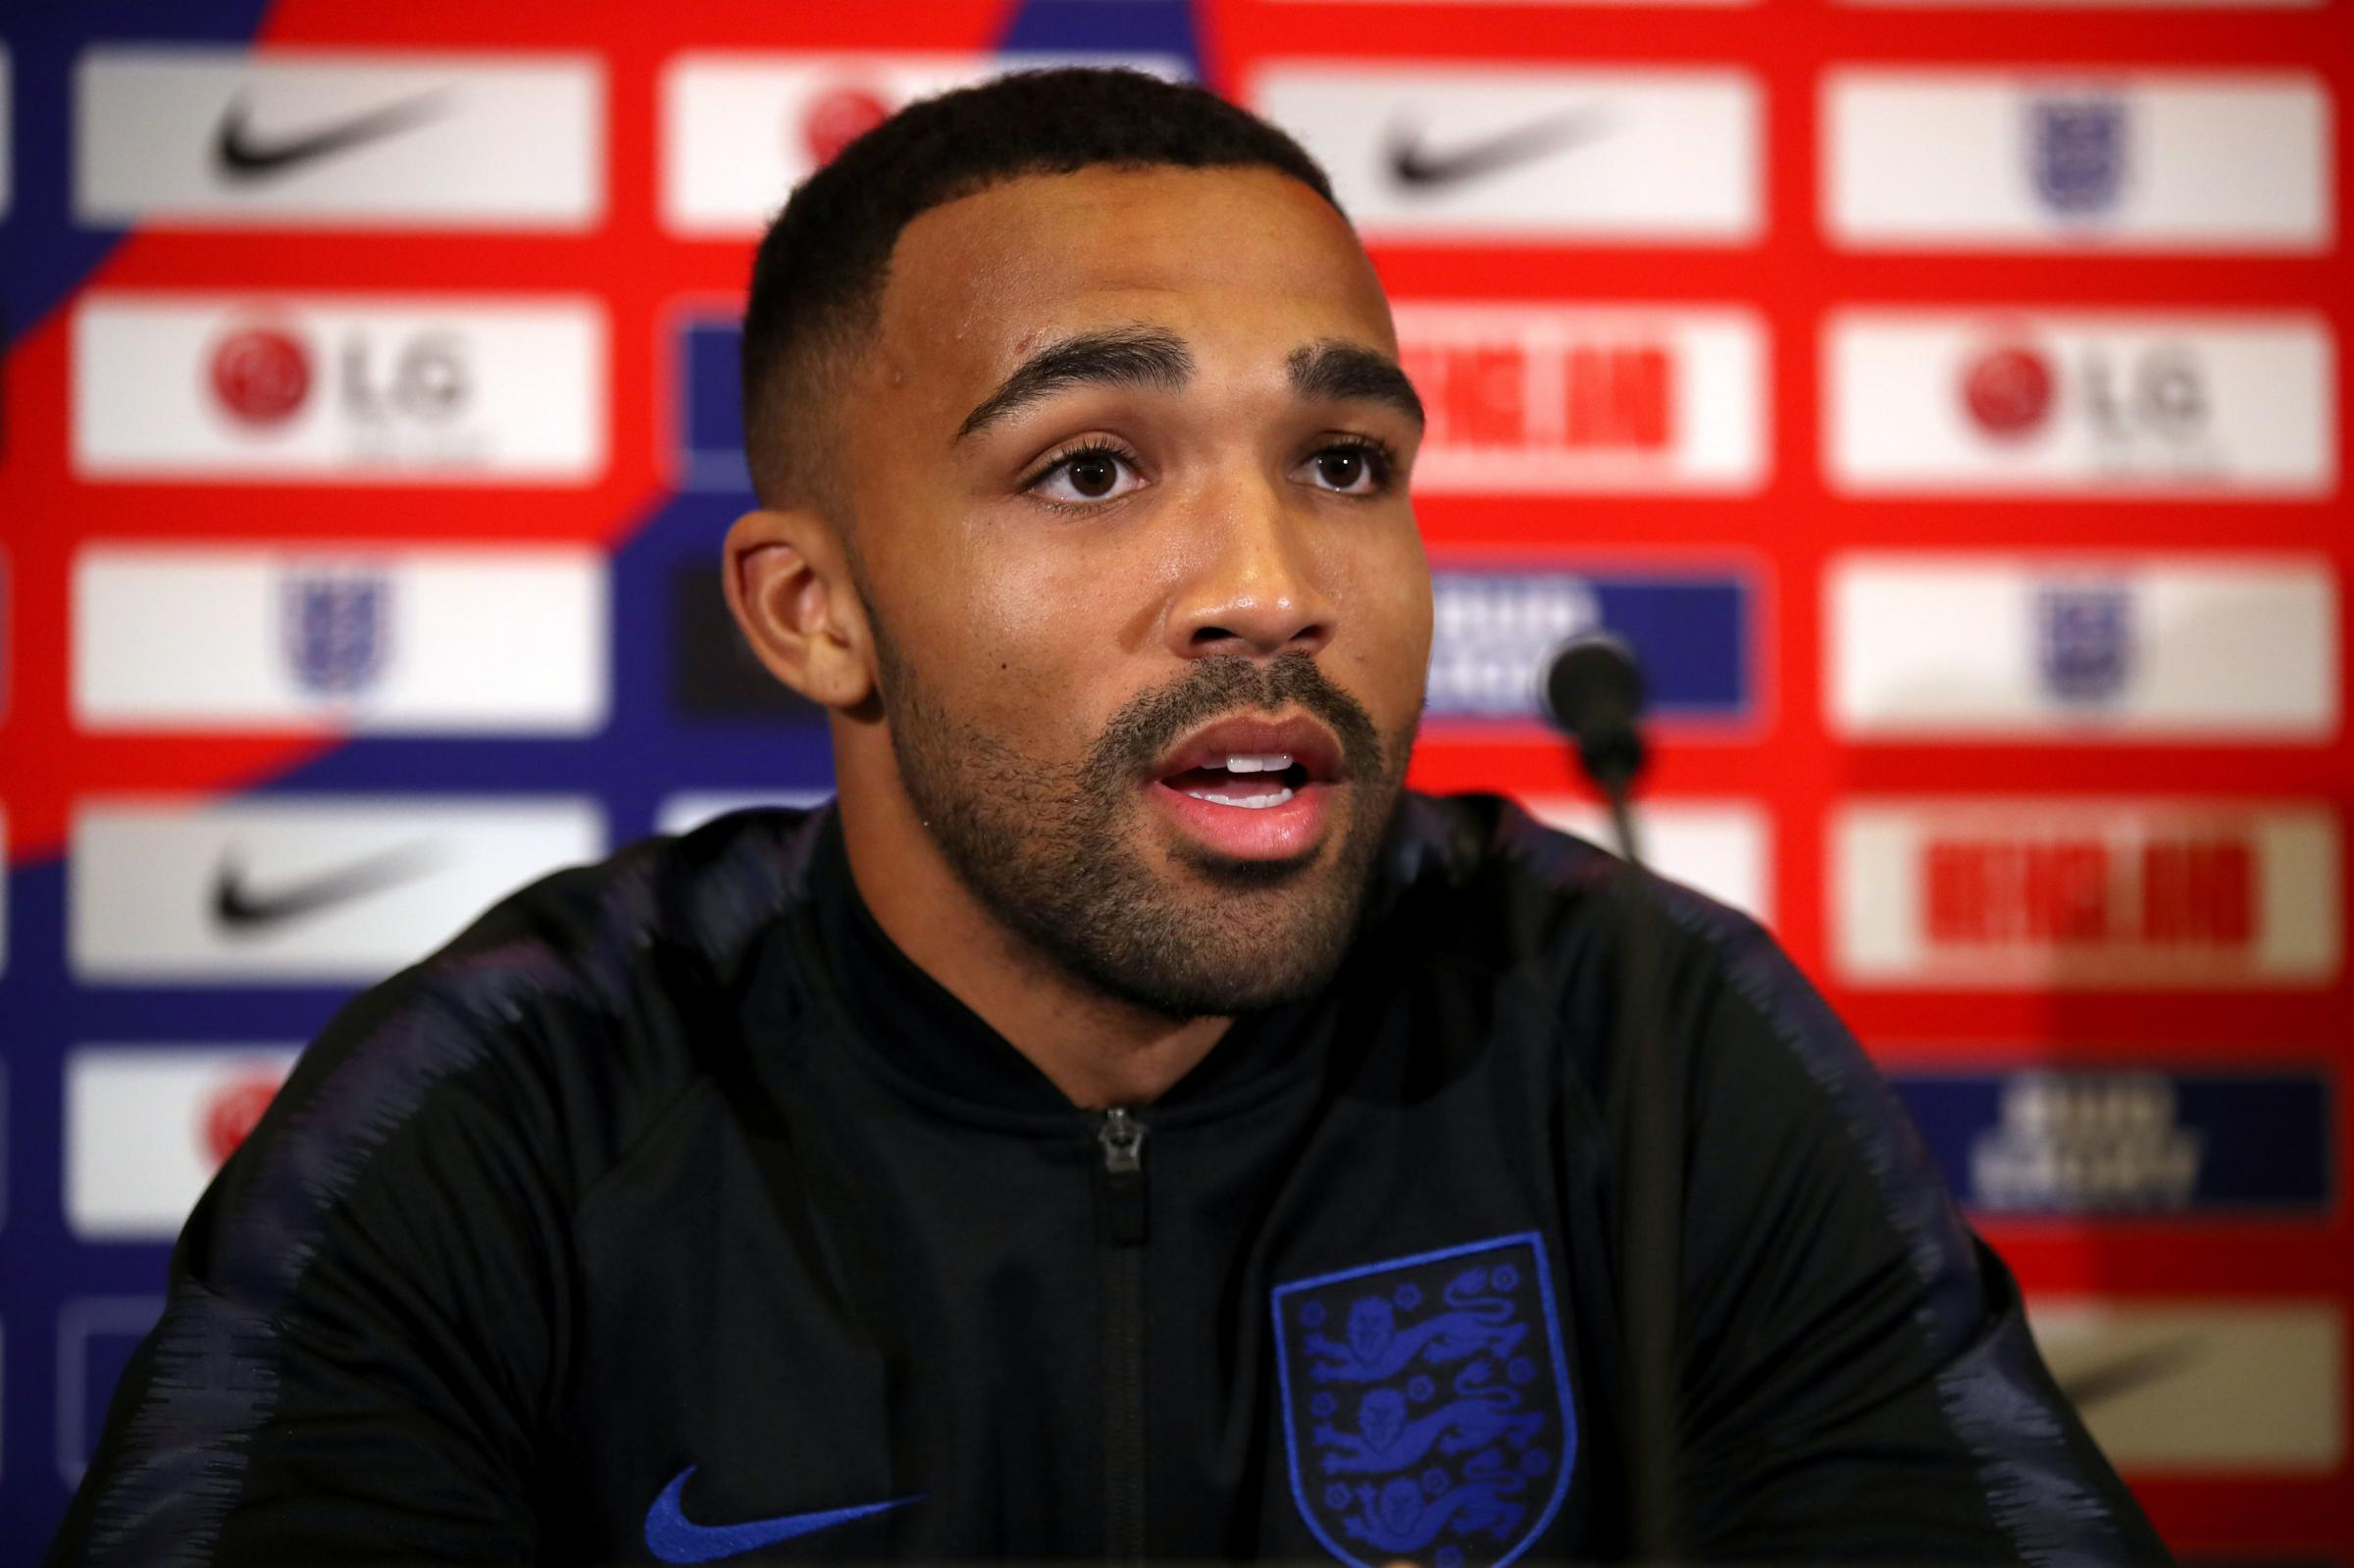 'It's an honour sharing a dressing room with Rooney and Kane'